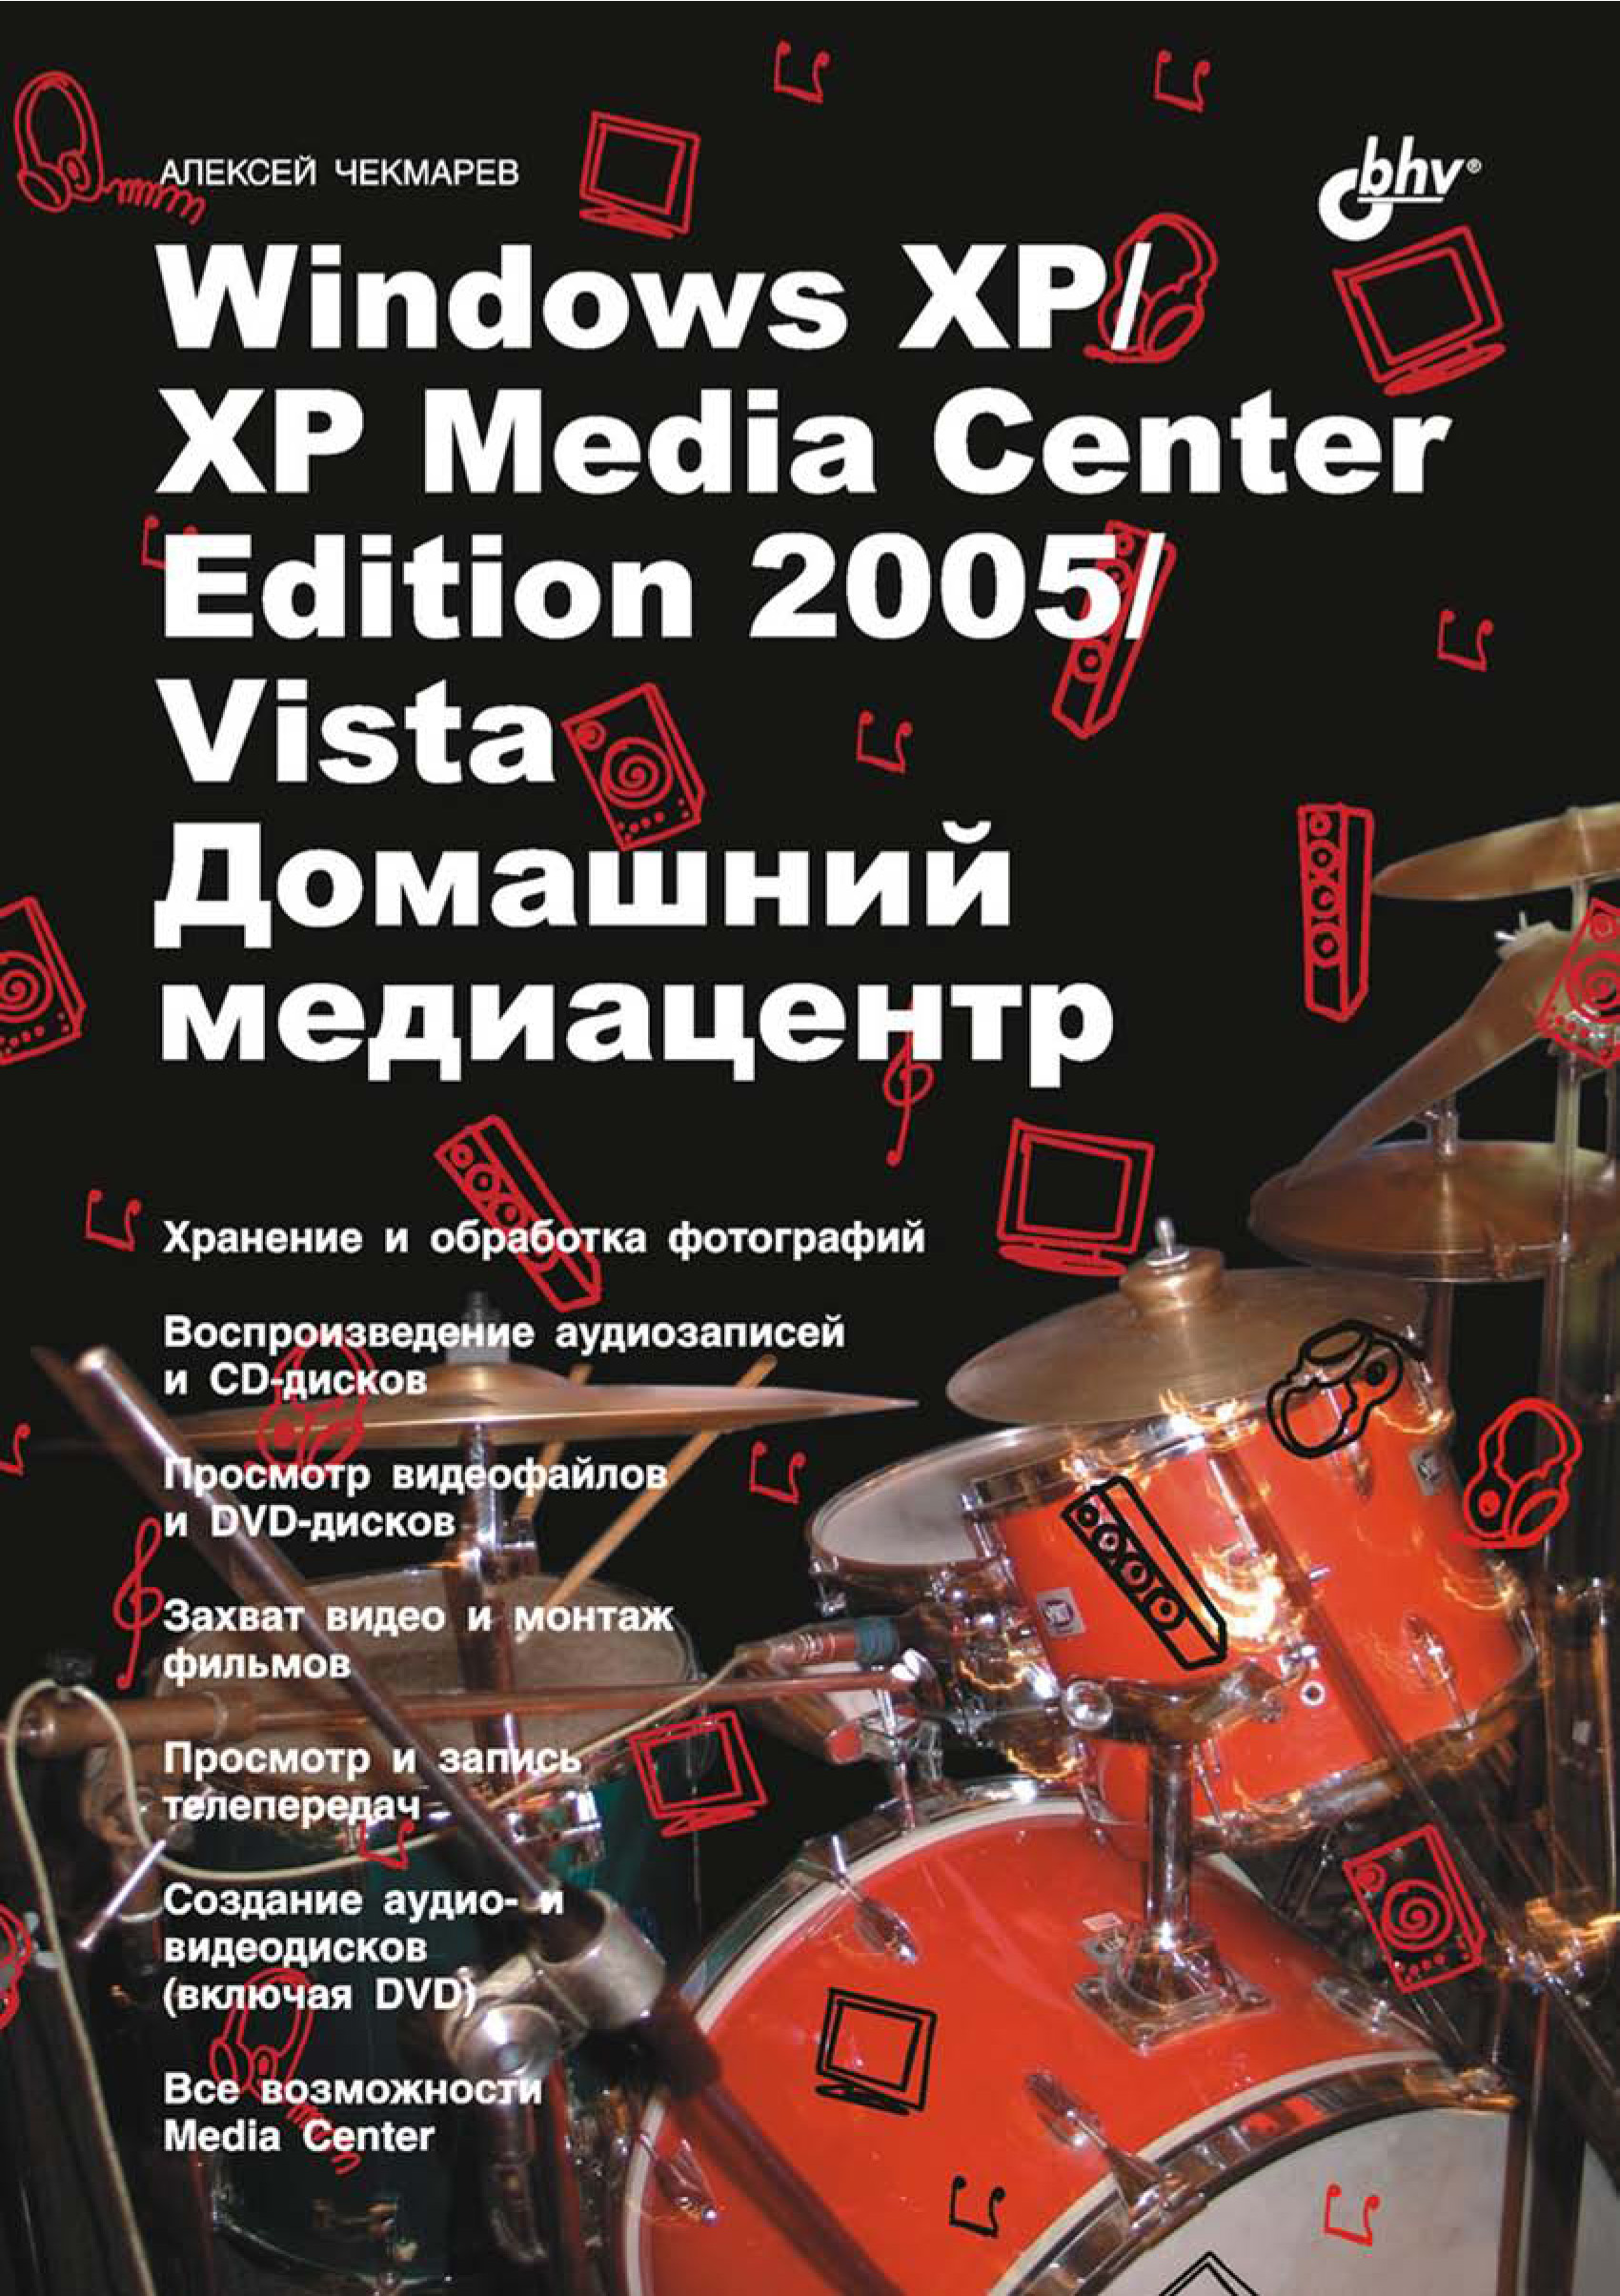 Алексей Чекмарев Windows XP / XP Media Center Edition / Vista. Домашний медиацентр андреев а кокорева о чекмарев а юрченко л ms windows xp руководство администратора в подлиннике